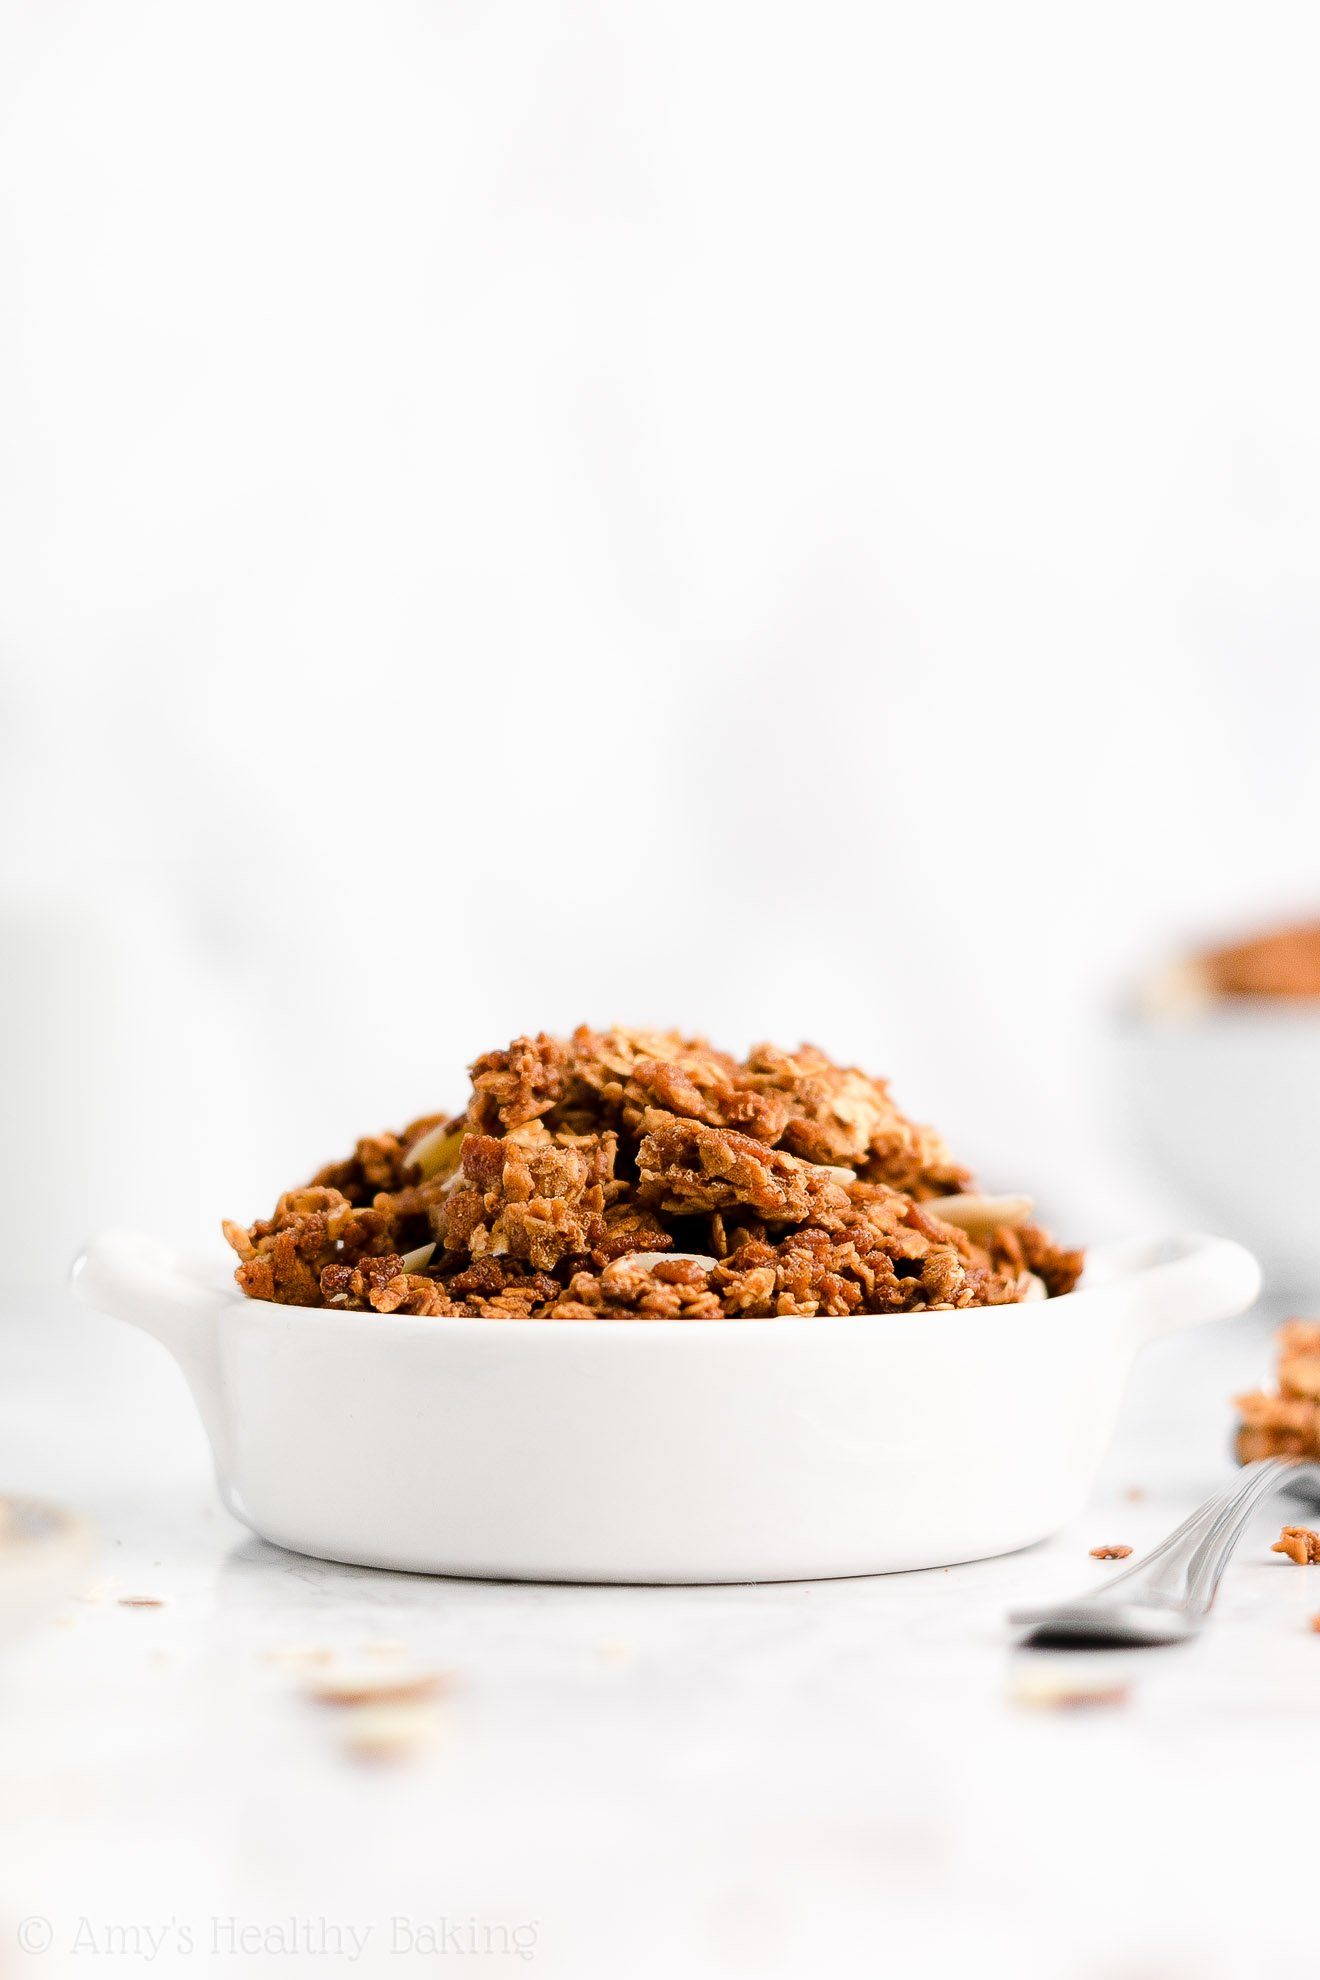 Easy Healthy Homemade Low Calorie Crunchy Clusters Almond Butter Granola